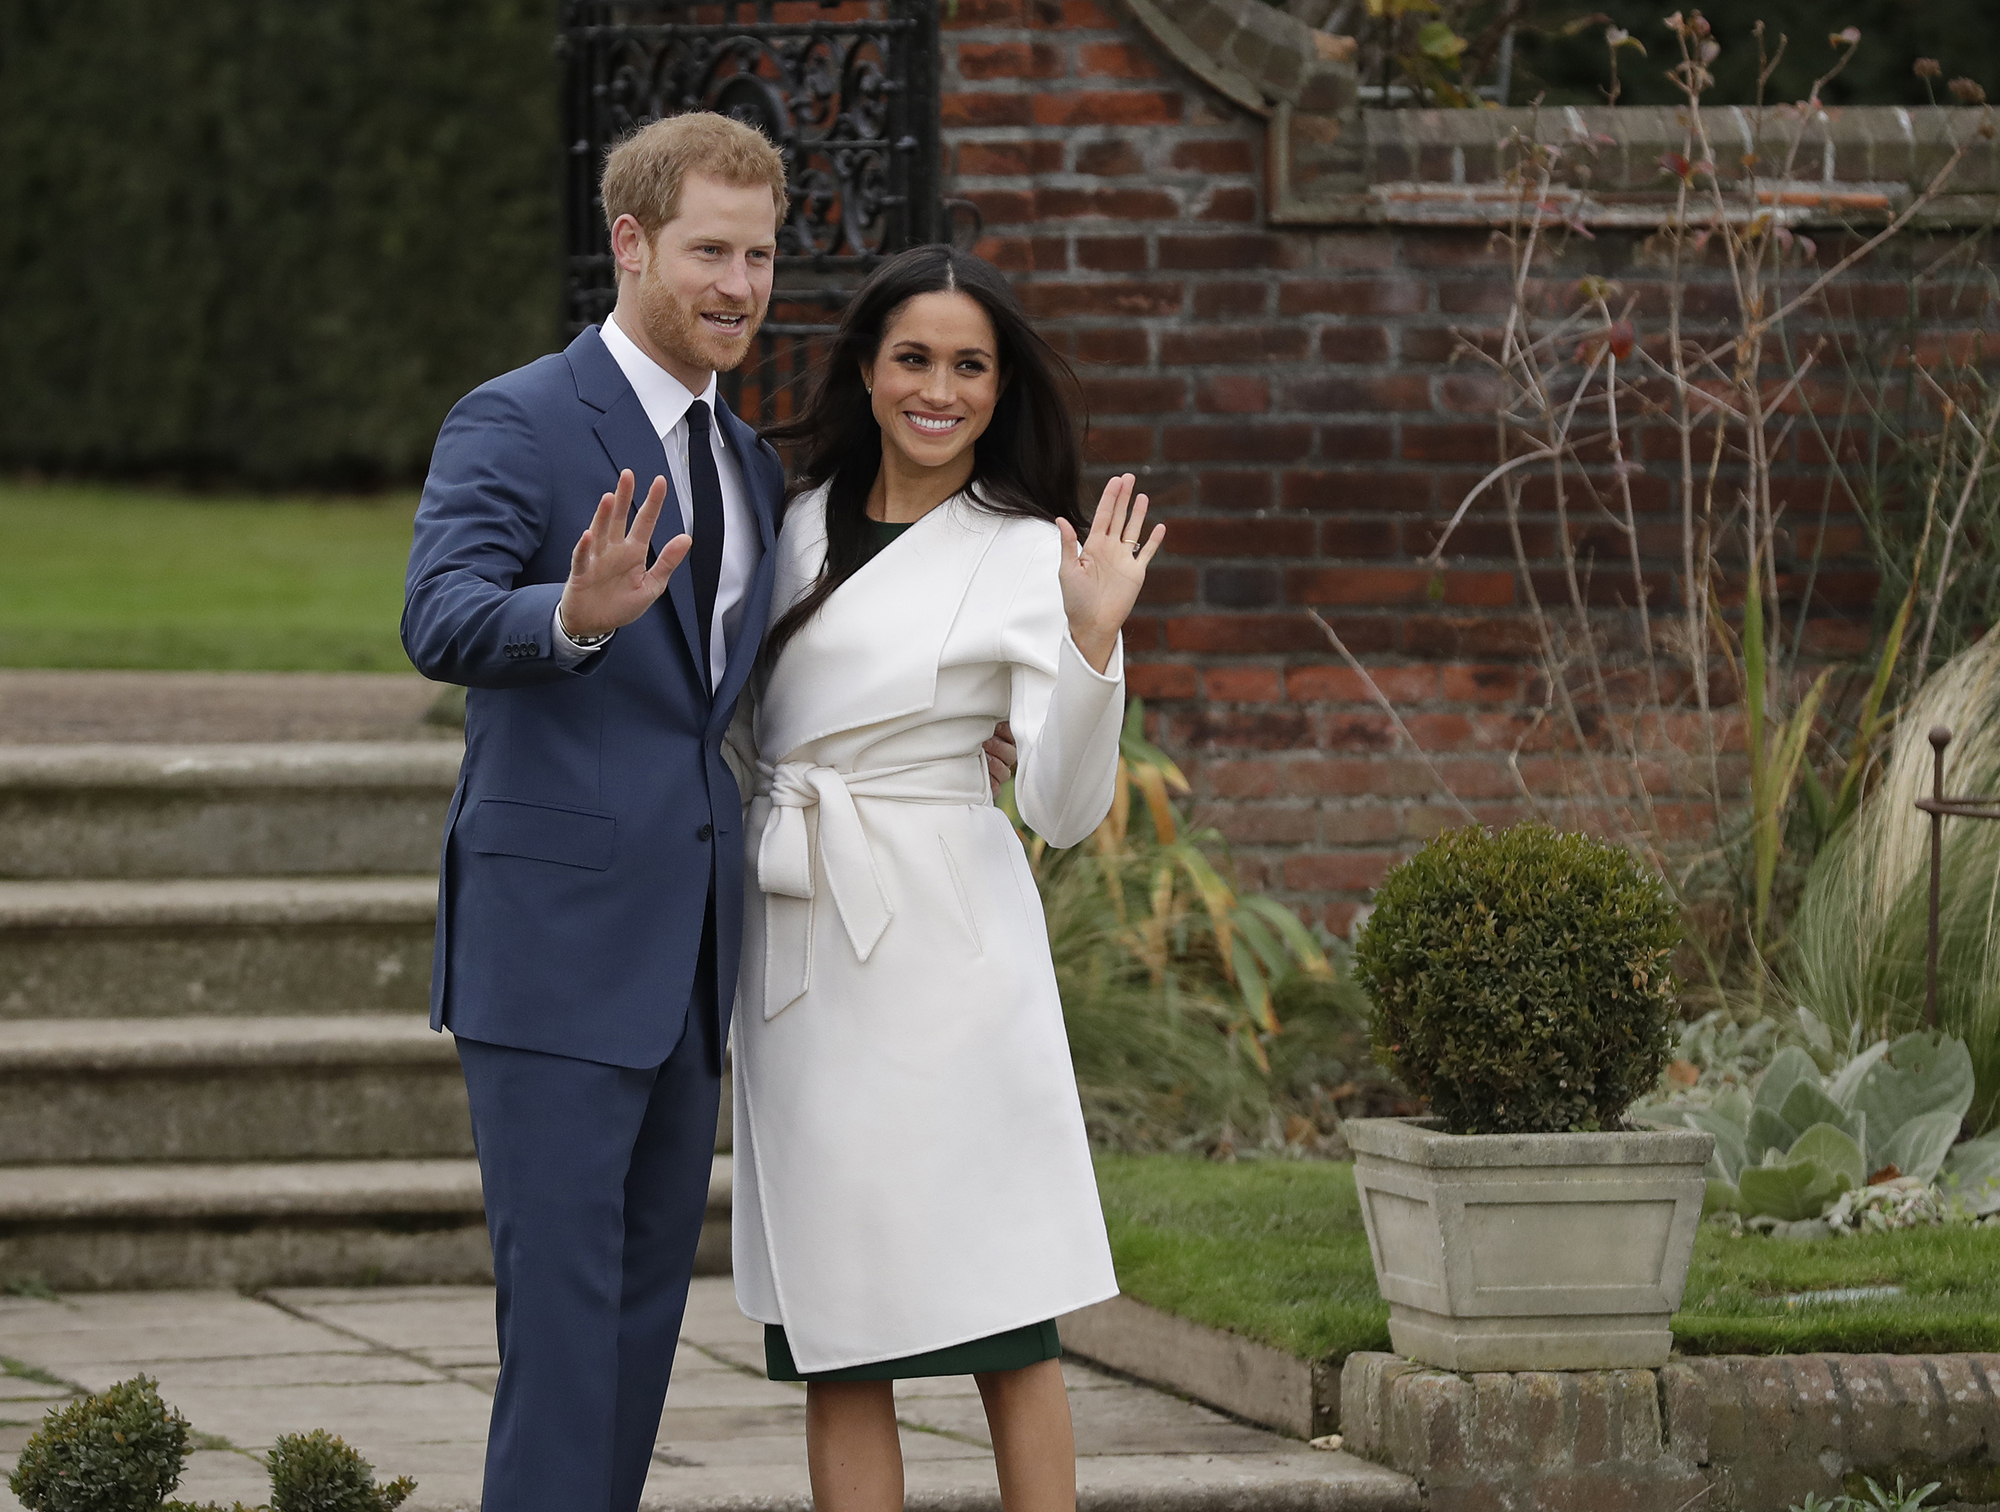 <div class='meta'><div class='origin-logo' data-origin='AP'></div><span class='caption-text' data-credit='AP Photo/Matt Dunham'>Britain's Prince Harry and his fiancee Meghan Markle pose for photographers during a photocall in the grounds of Kensington Palace in London, Monday Nov. 27, 2017.</span></div>